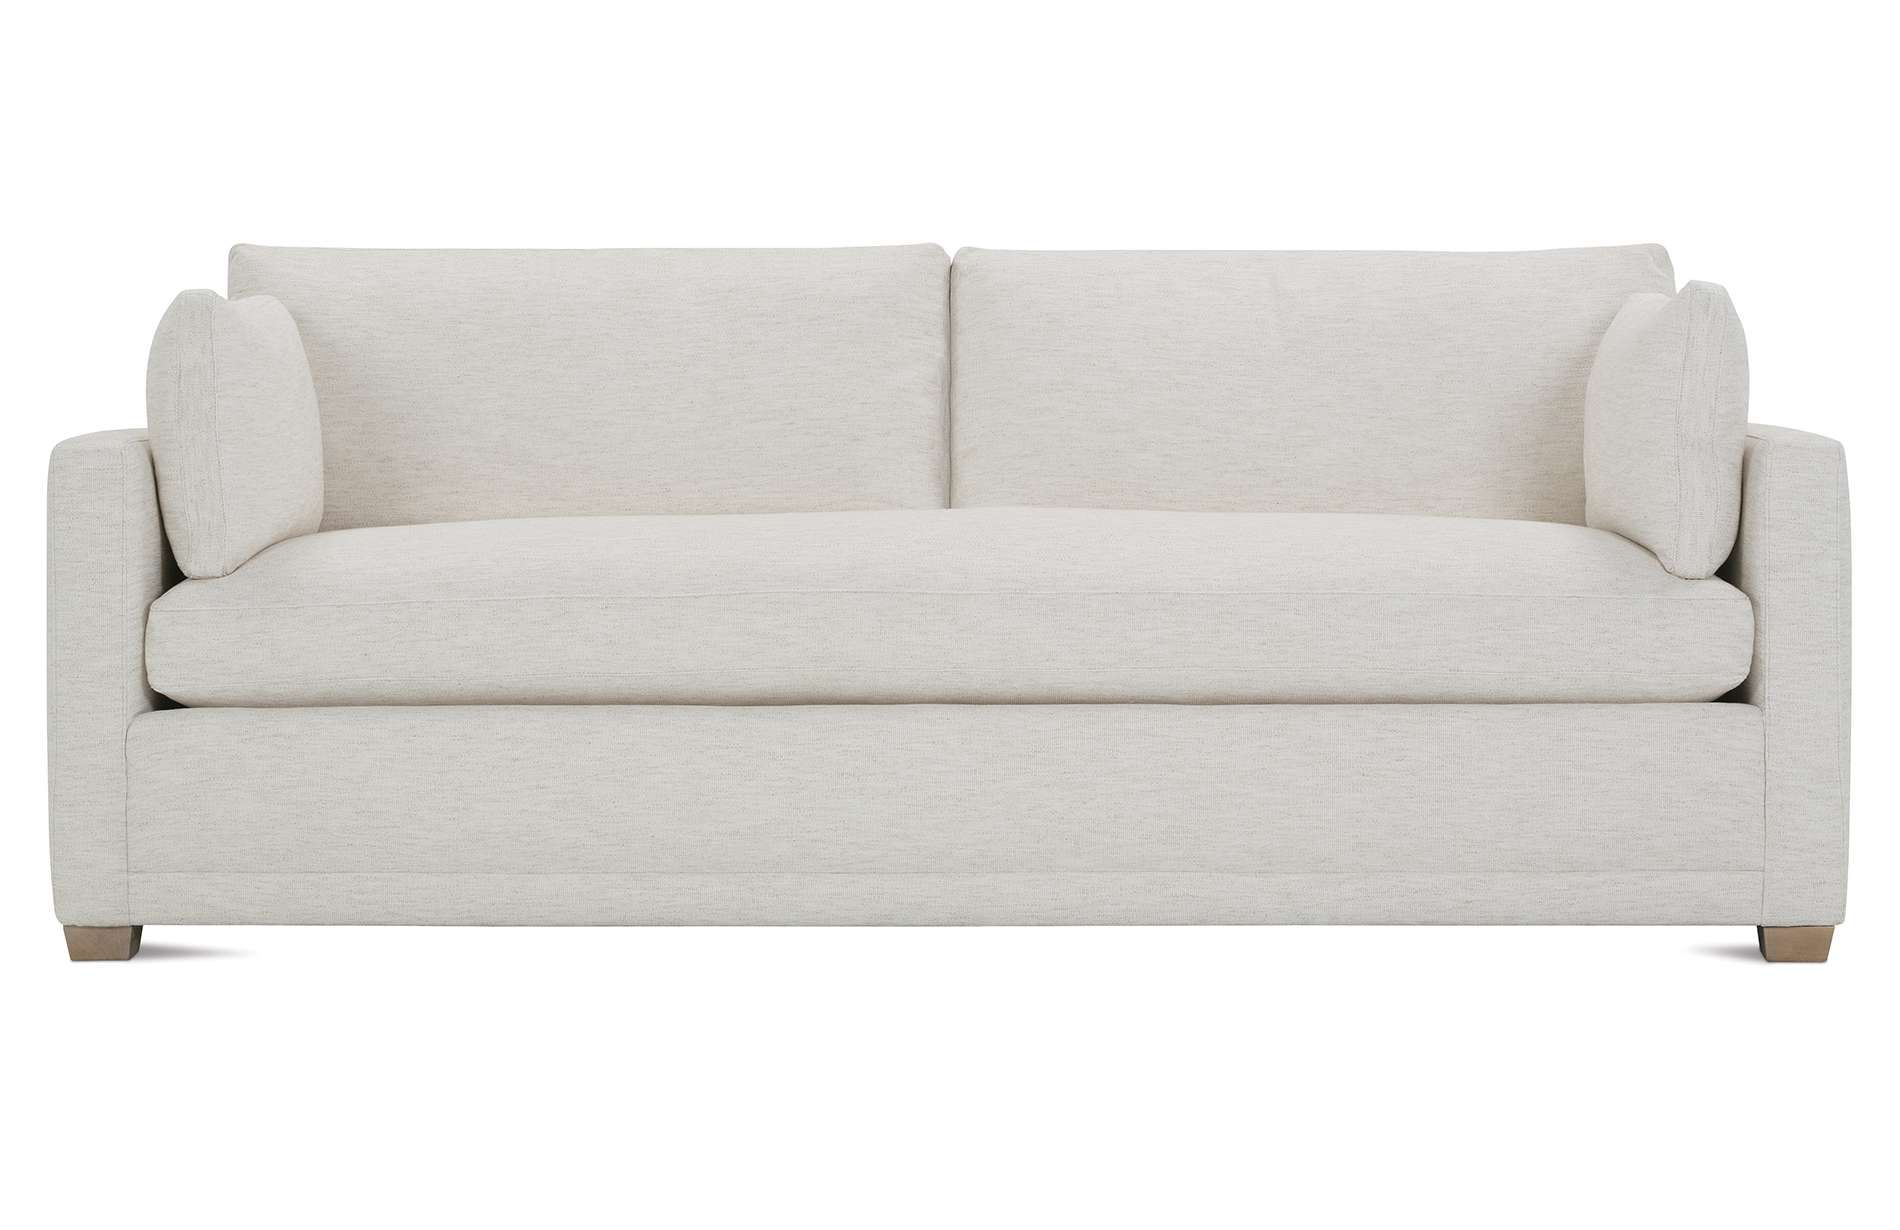 The Sylvie Bench Seat Sofa Is Designed For Those That Yearn For